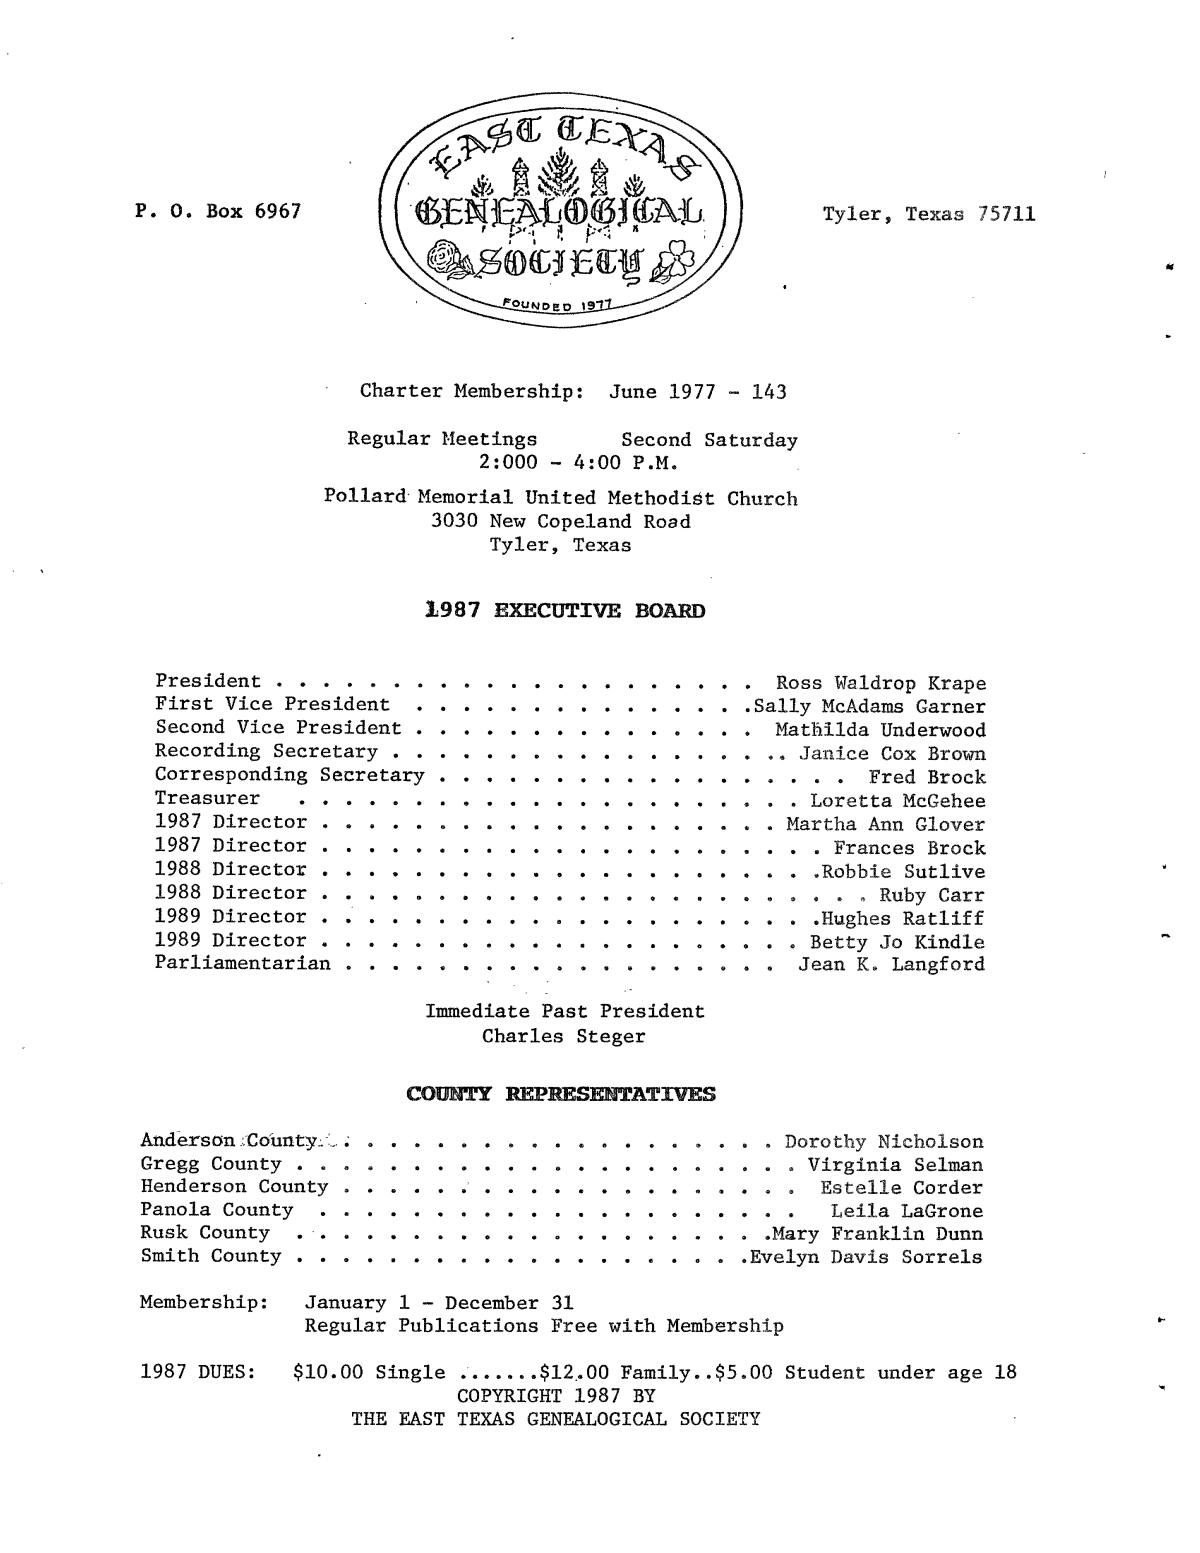 East Texas Family Records, Volume 11, Number 1, Spring 1987                                                                                                      None